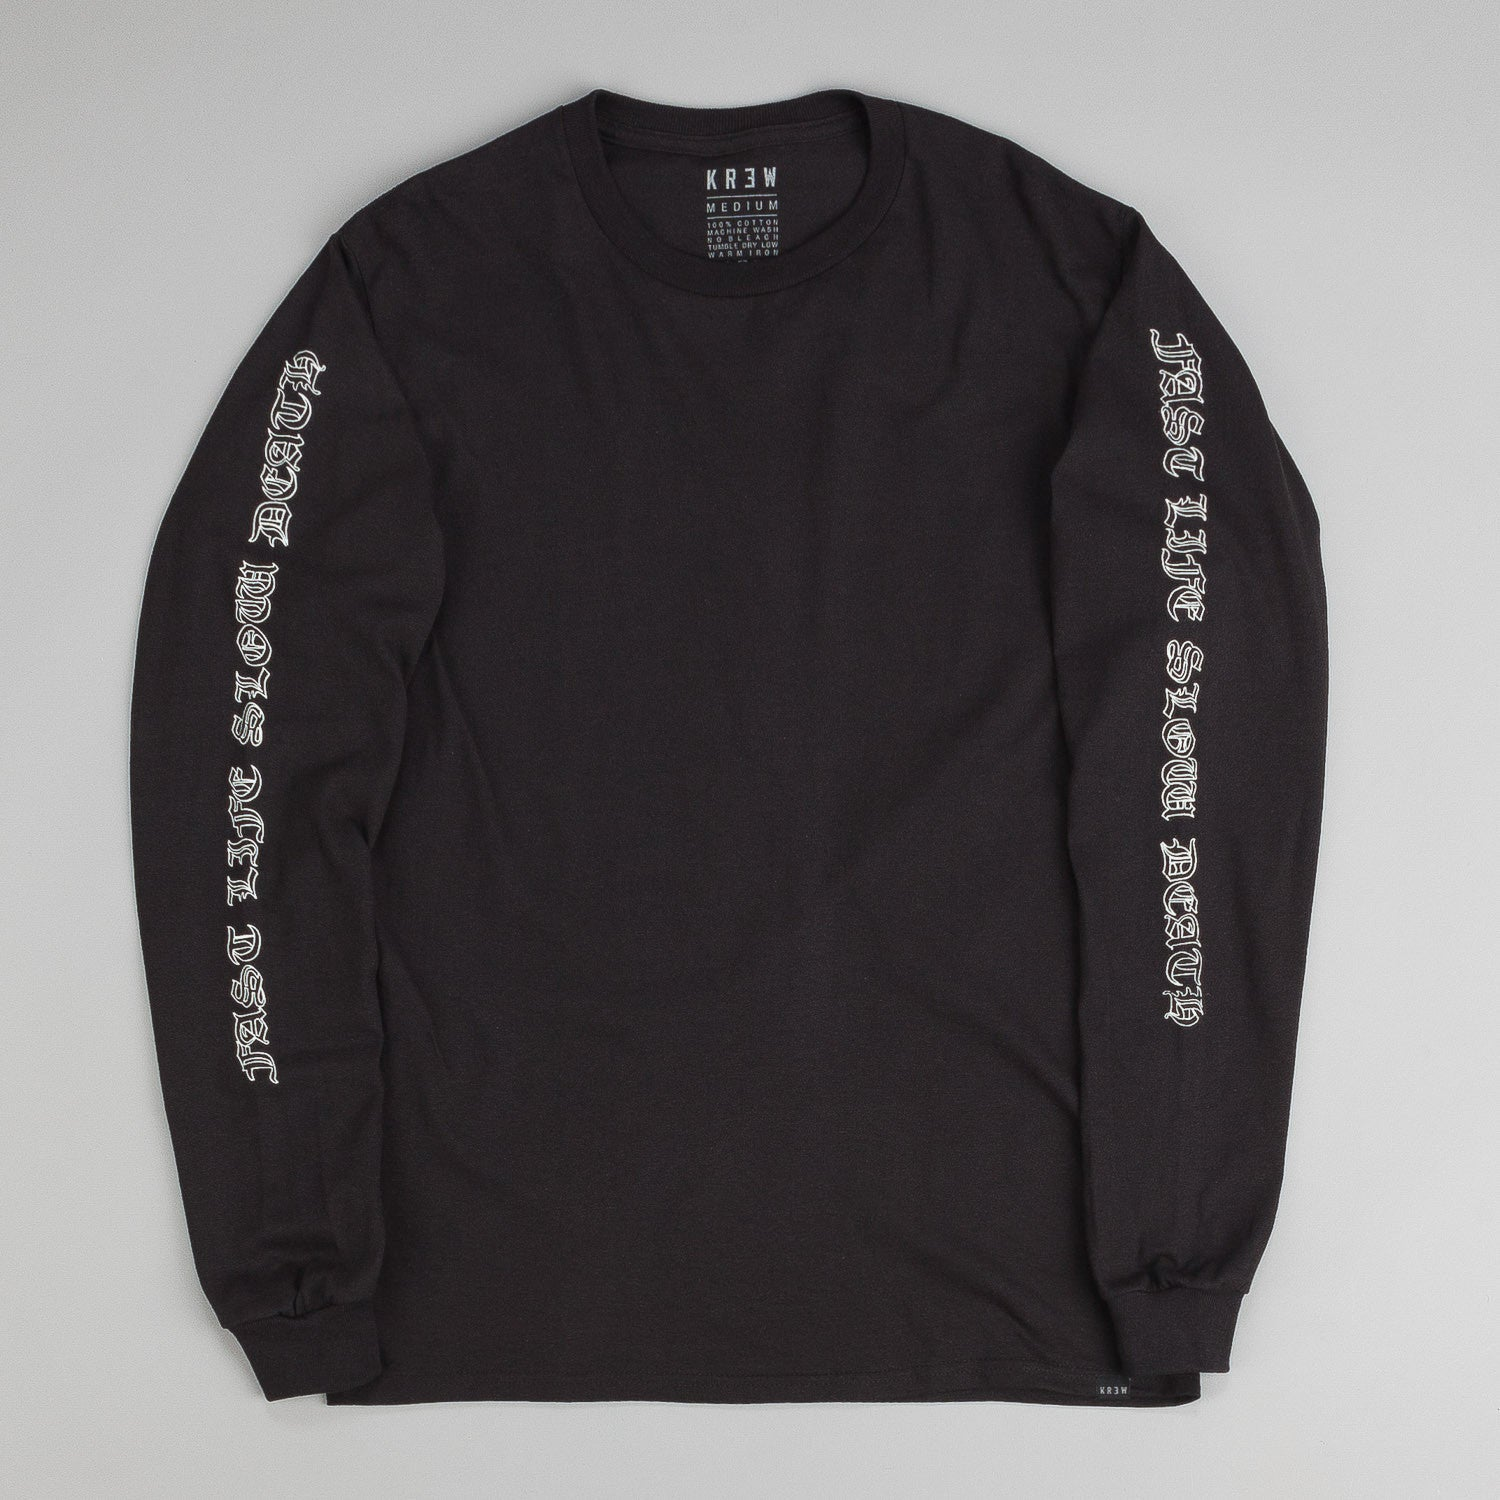 Kr3w Slow Death L/S T-Shirt